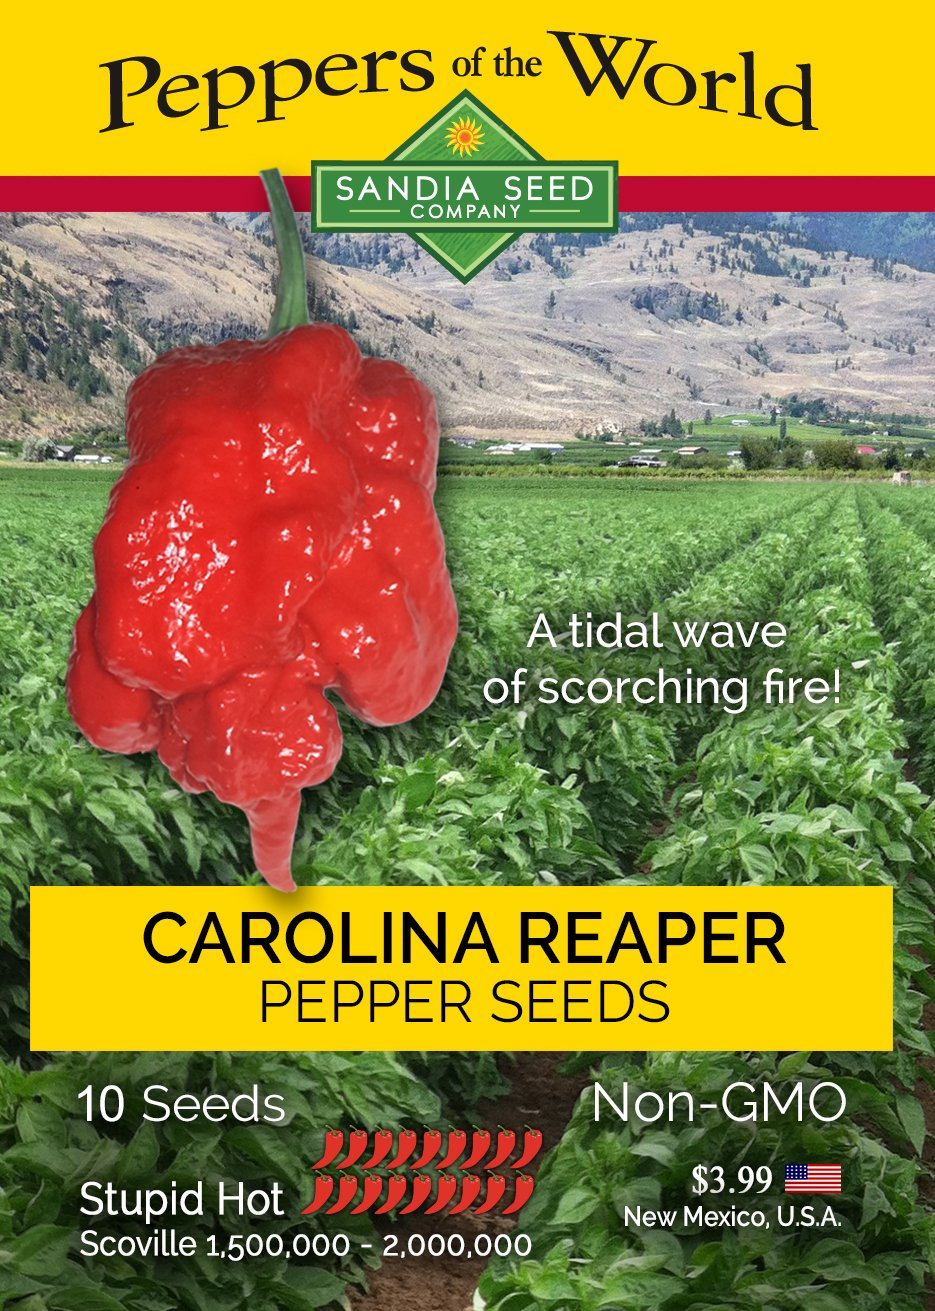 Hottest Pepper 2018 & 2019 - Carolina Reaper Seeds